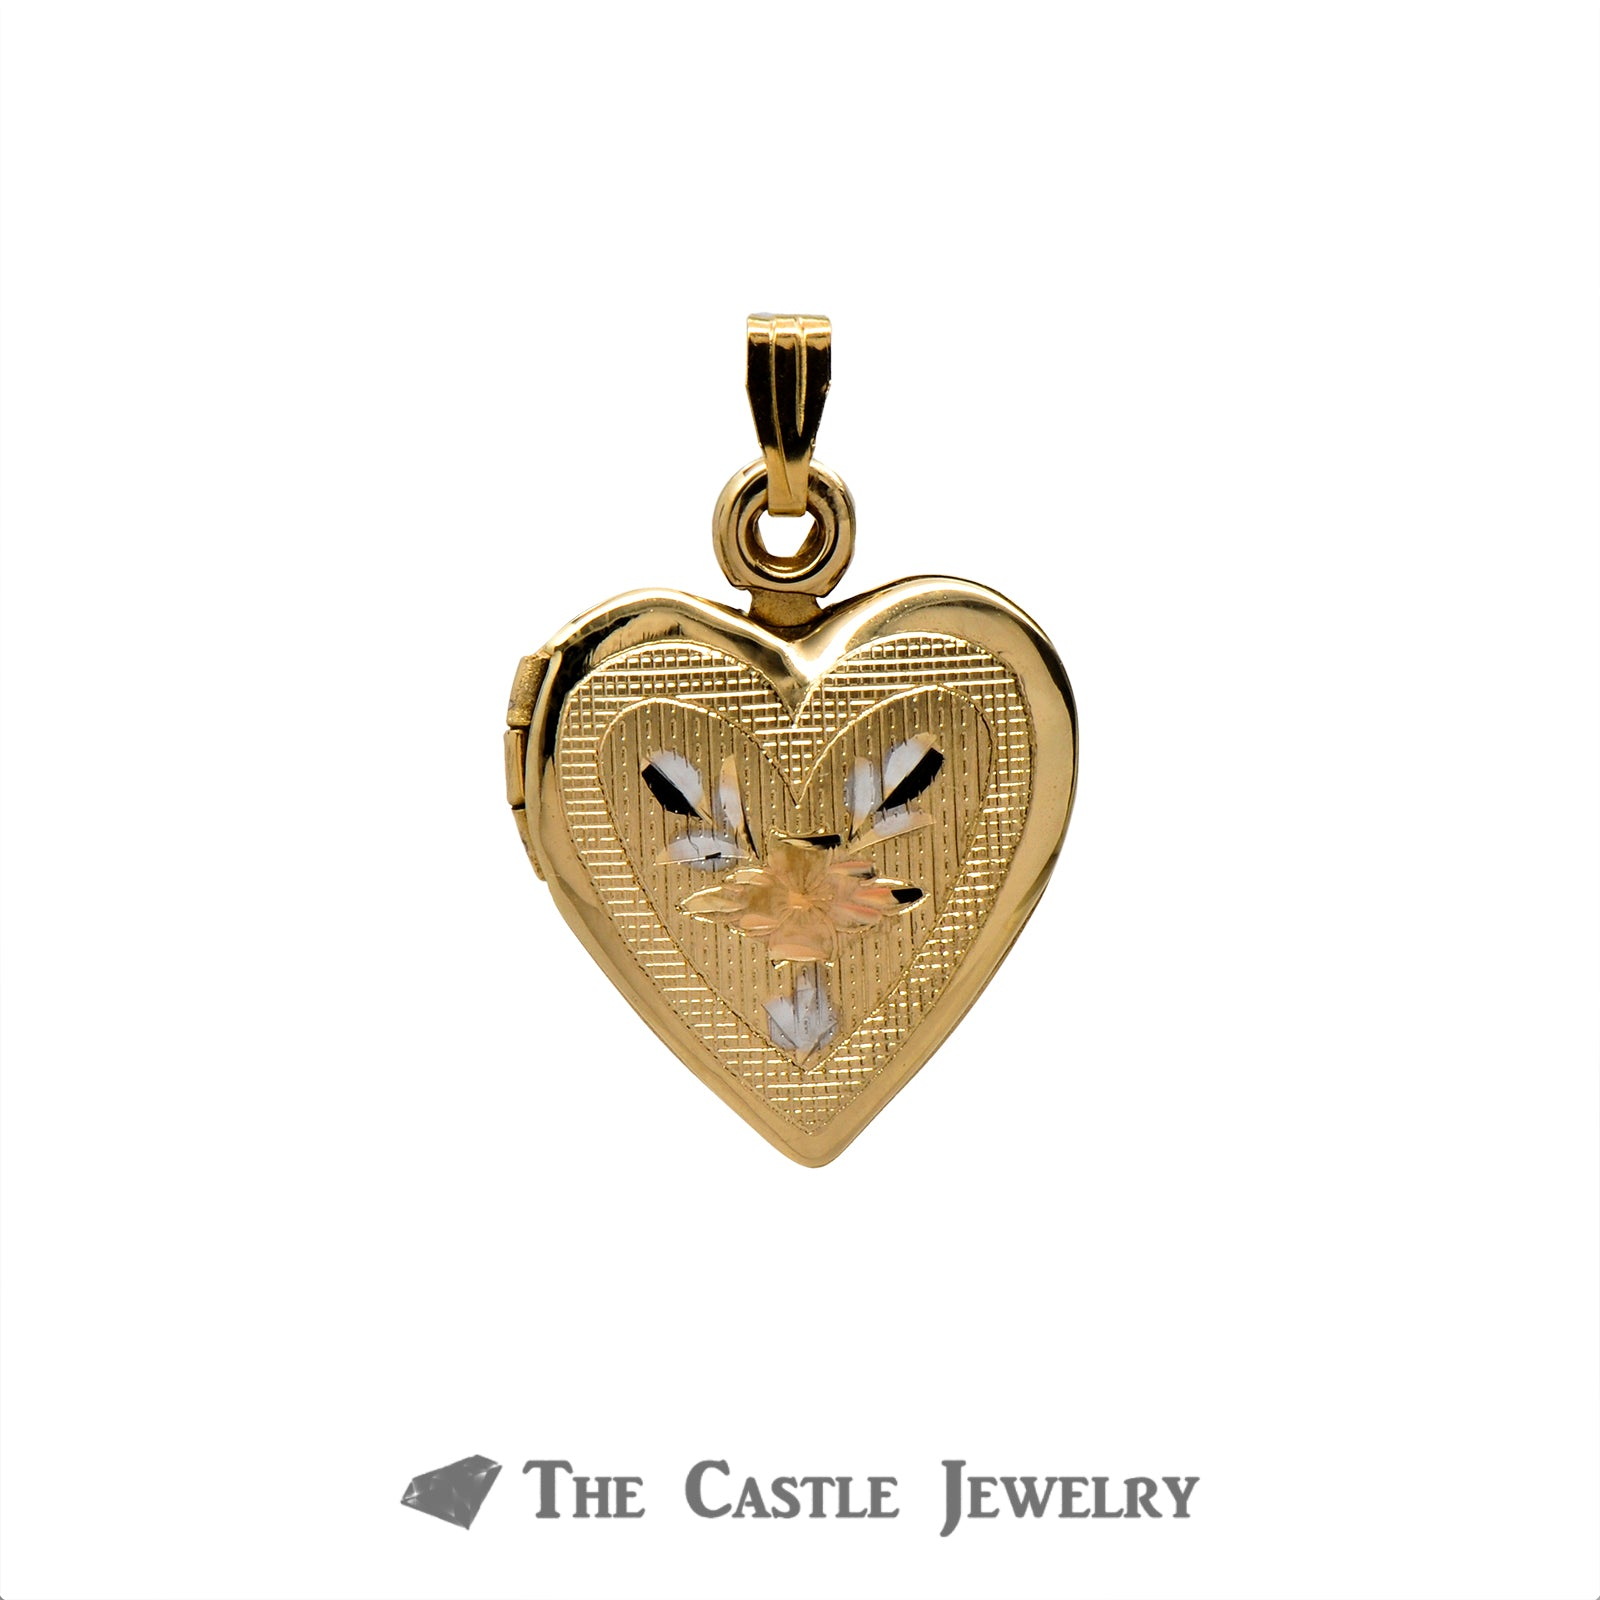 14k Yellow Gold Heart Locket Pendant with Floral Design